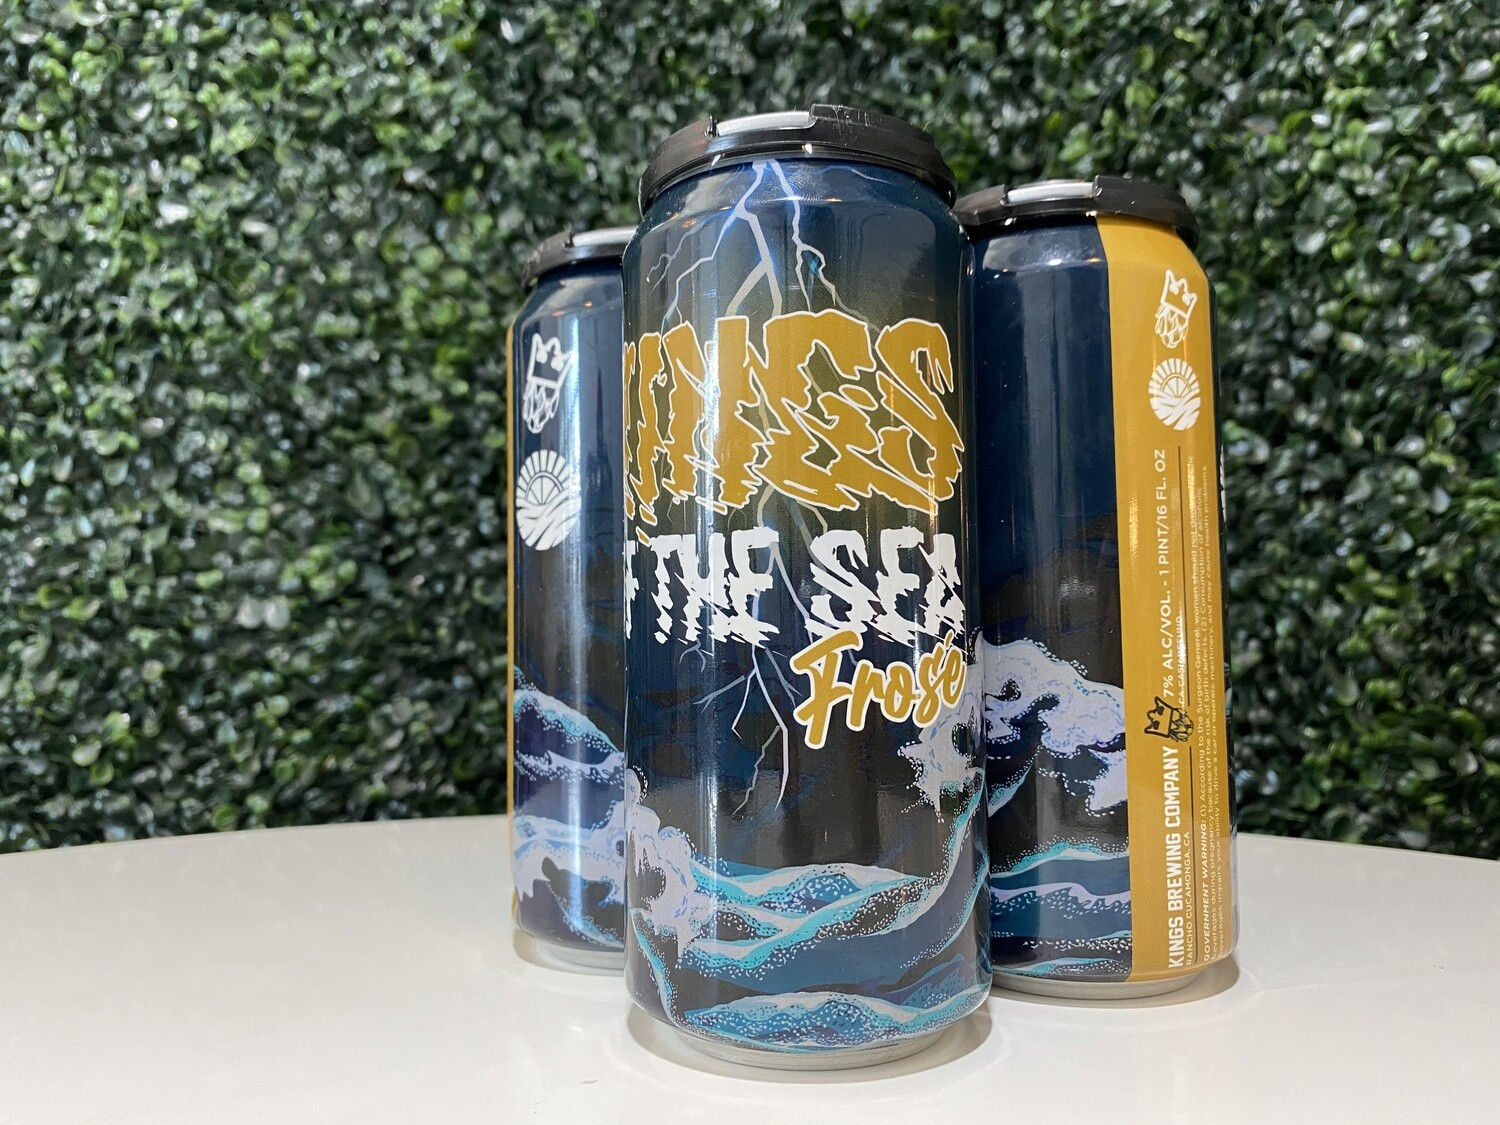 Kings Brewing Company - King's of Sea Frose - Fruited Sour - 7% ABV - 4 Pack